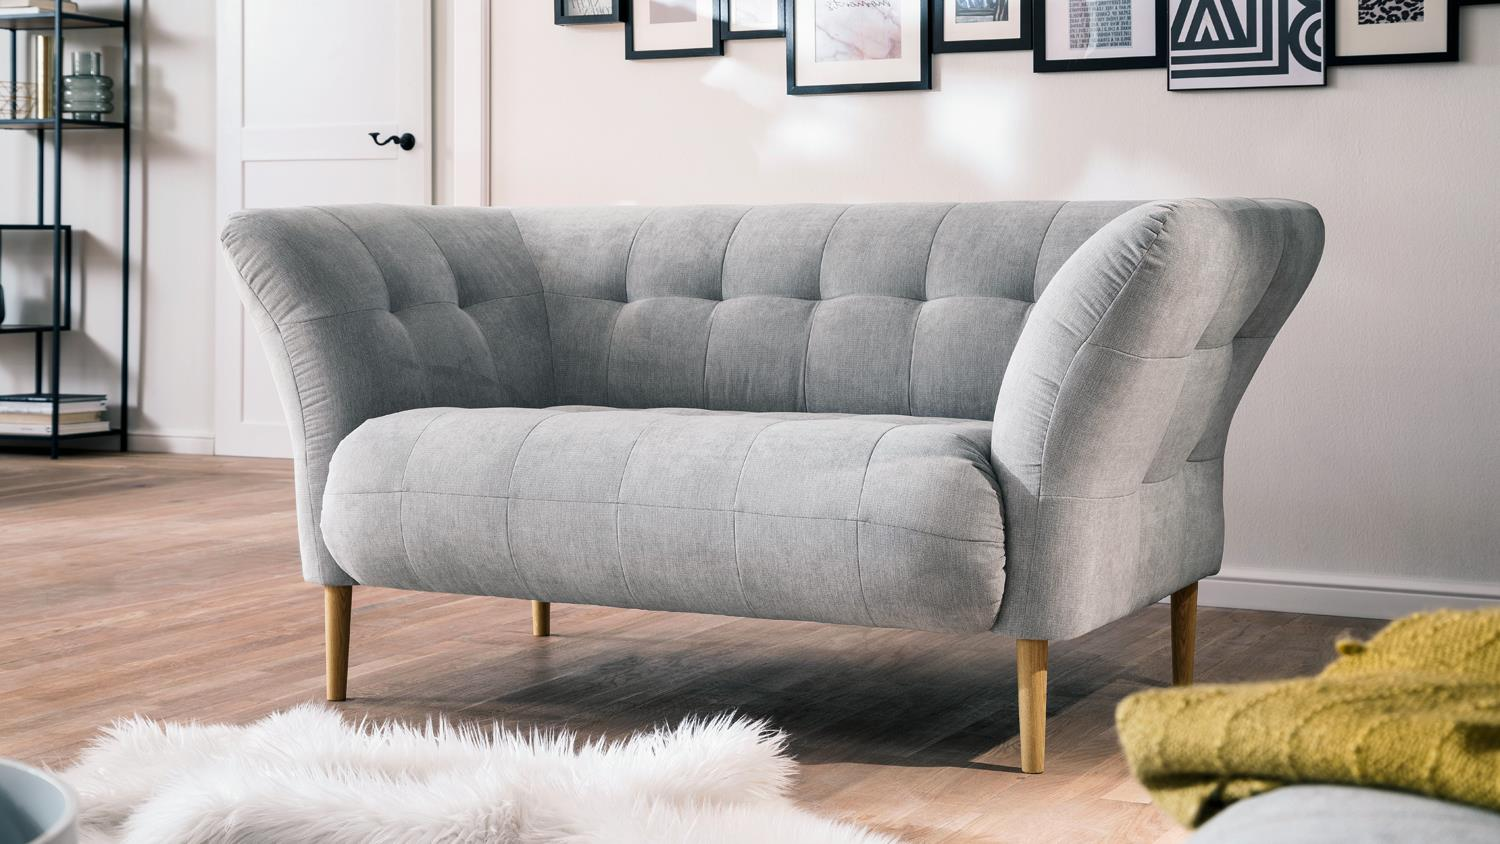 Couch Stoff Big Apple Couch